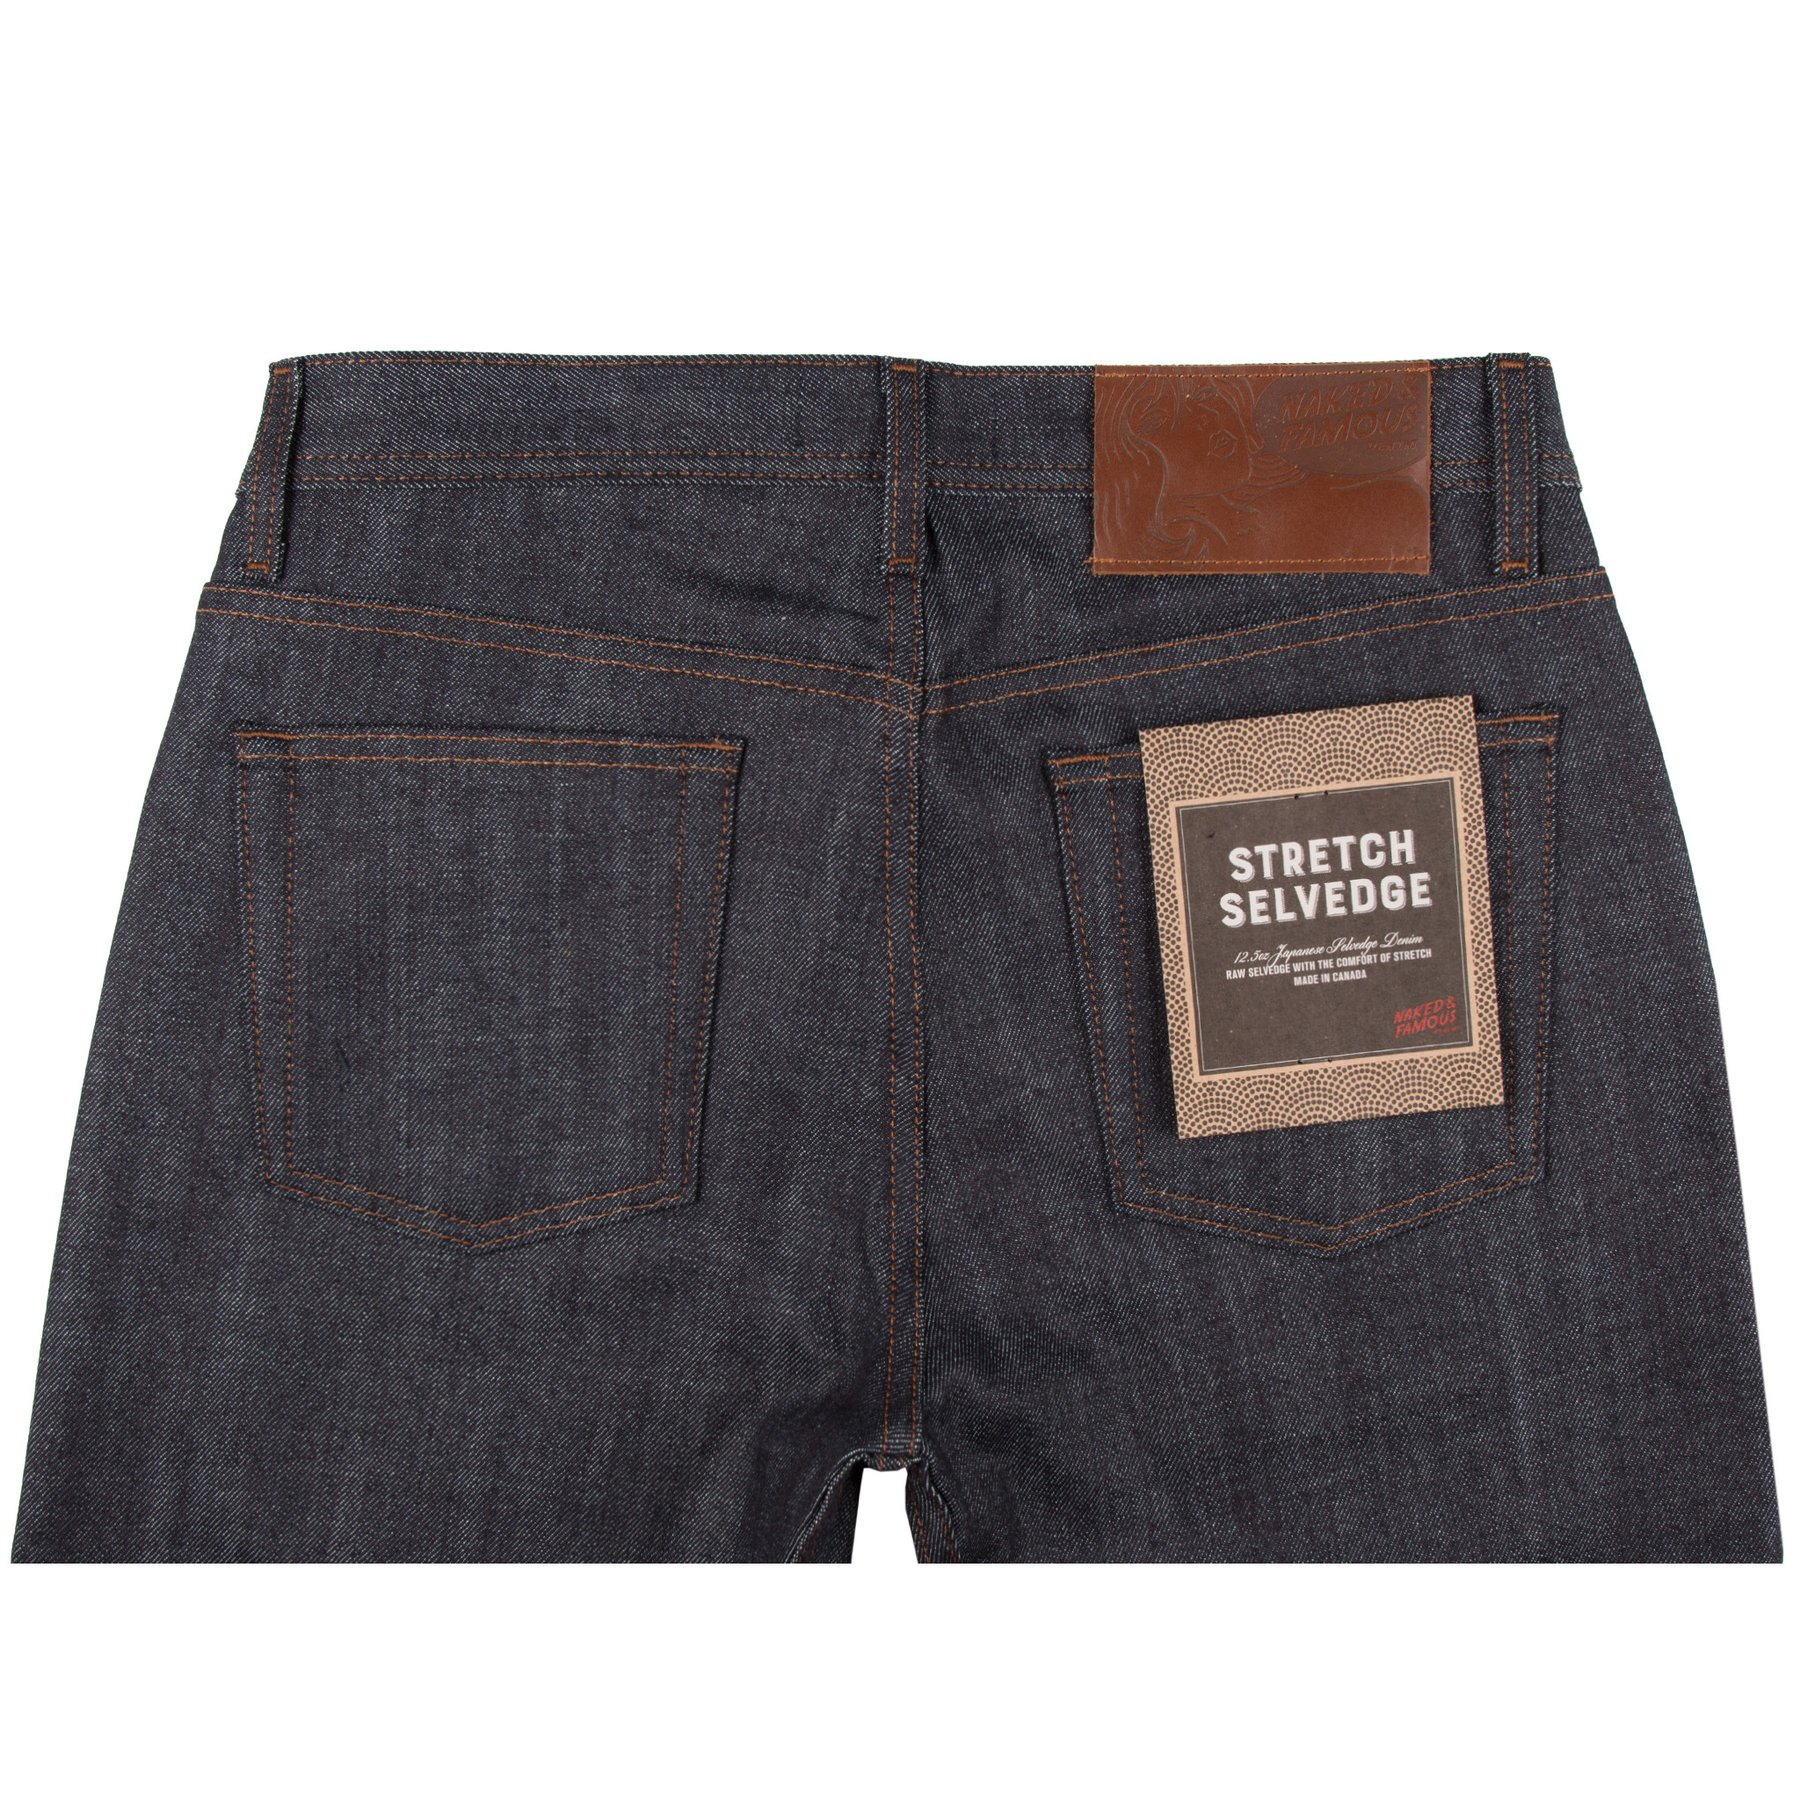 Stretch Selvedge Jeans Back